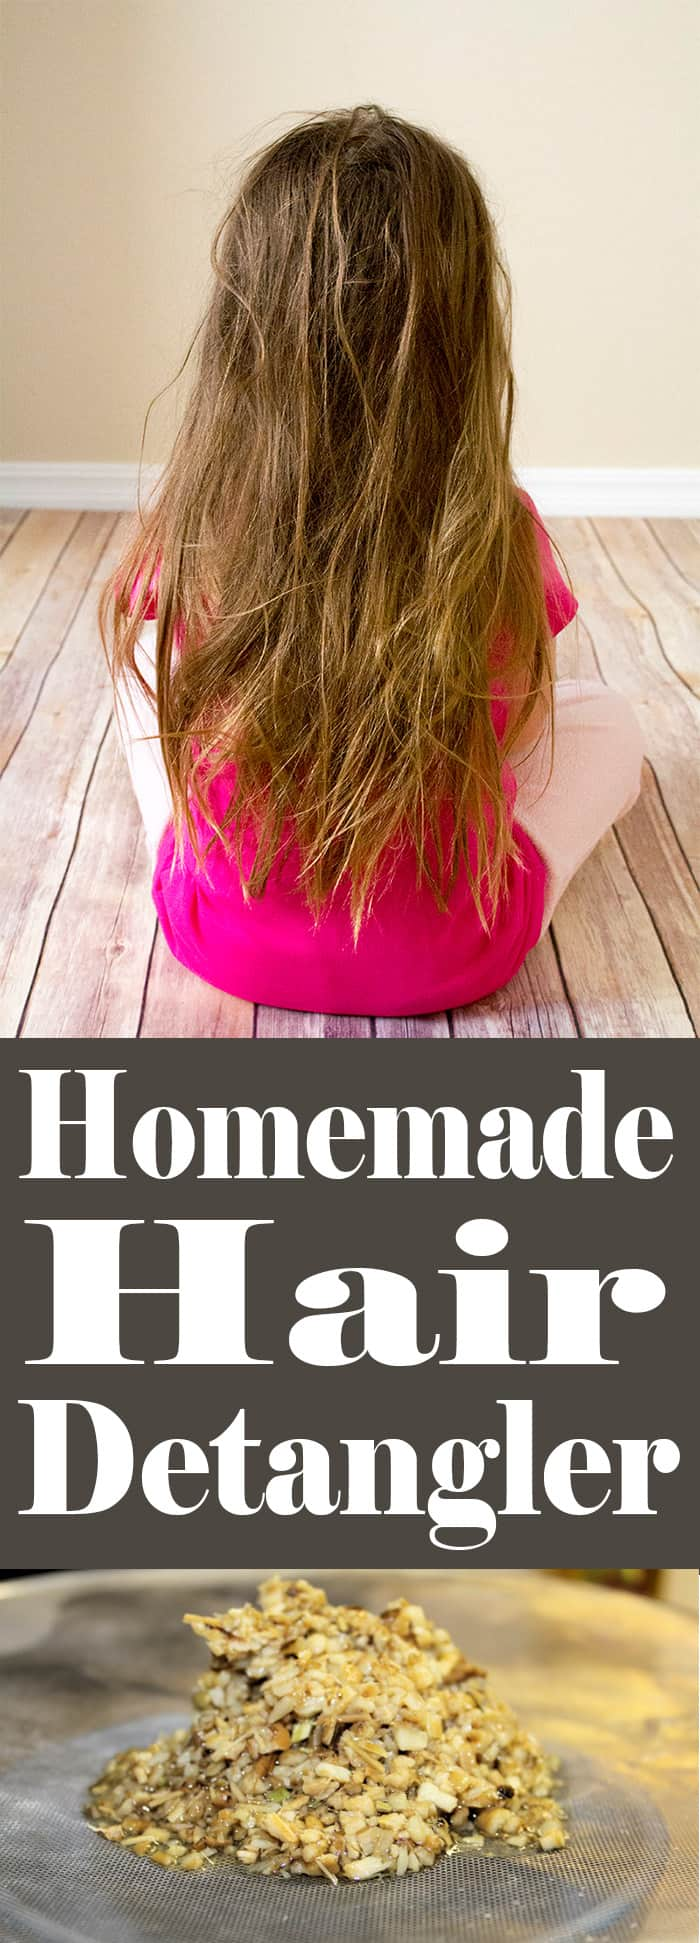 Homemade Hair Detangler